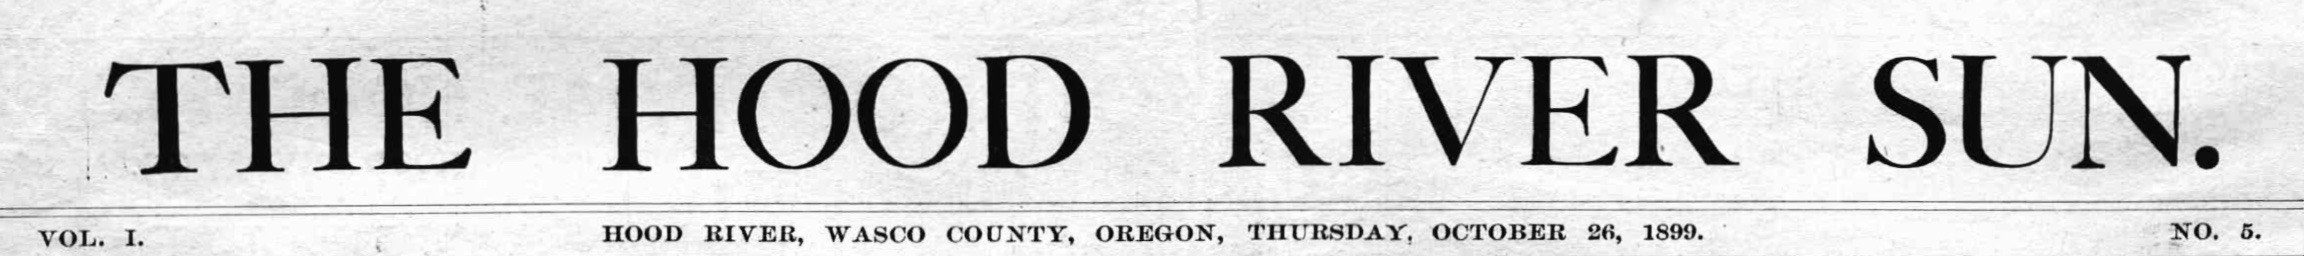 The Hood River sun. (Hood River, Or.) October 26, 1899, Image 1. http://oregonnews.uoregon.edu/lccn/2015260100/1899-10-26/ed-1/seq-1/